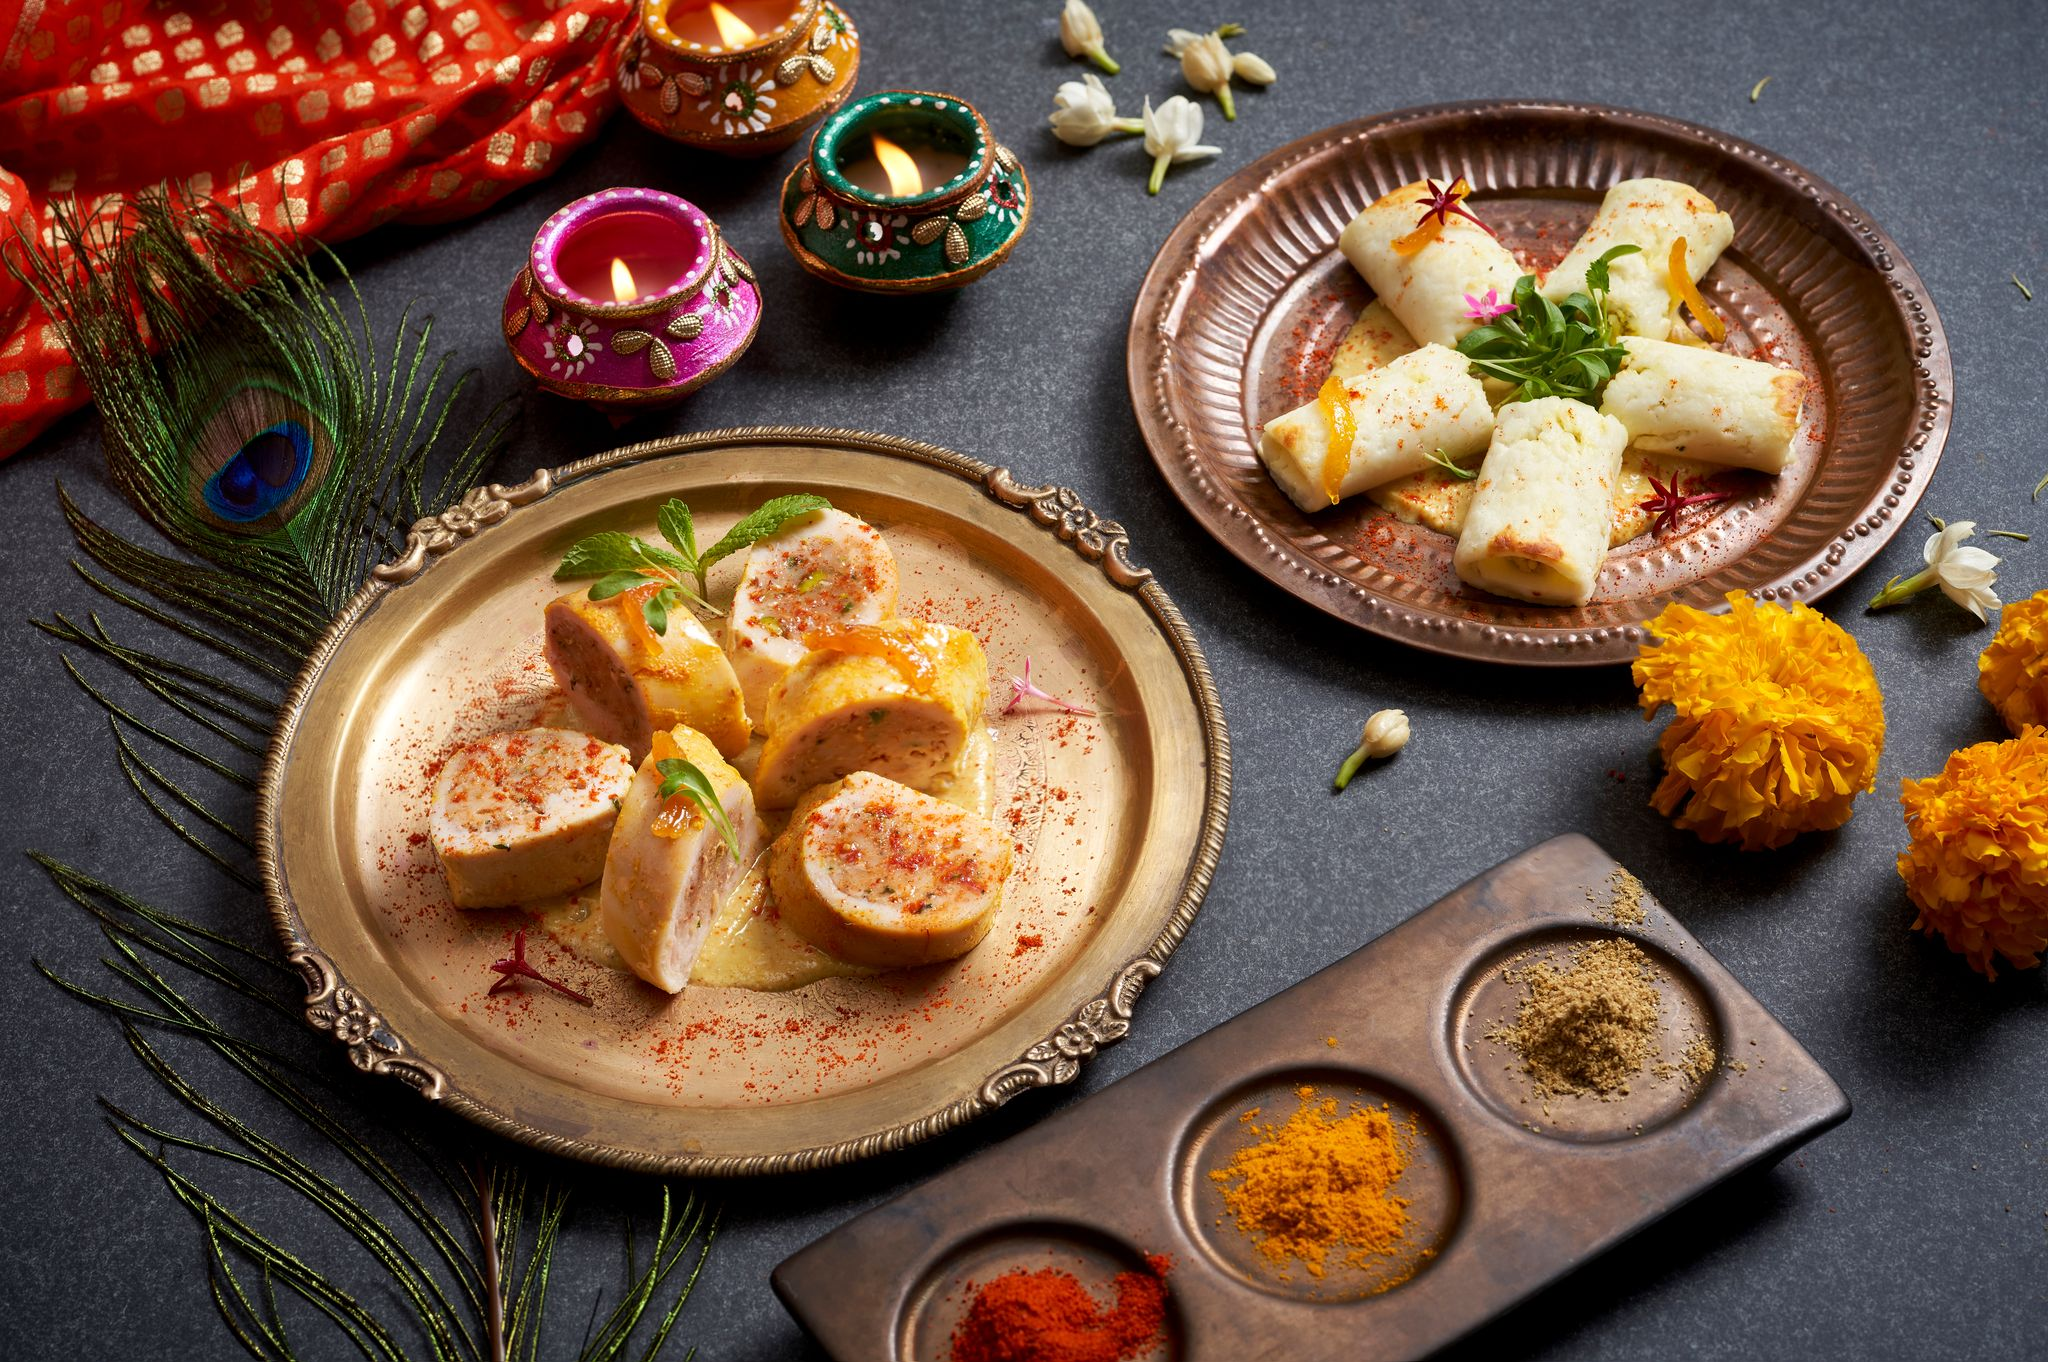 An equally exquisite vegetarian option will also be offered as part of the Diwali experience menu. Photo credit Raffles Hotel Singapore